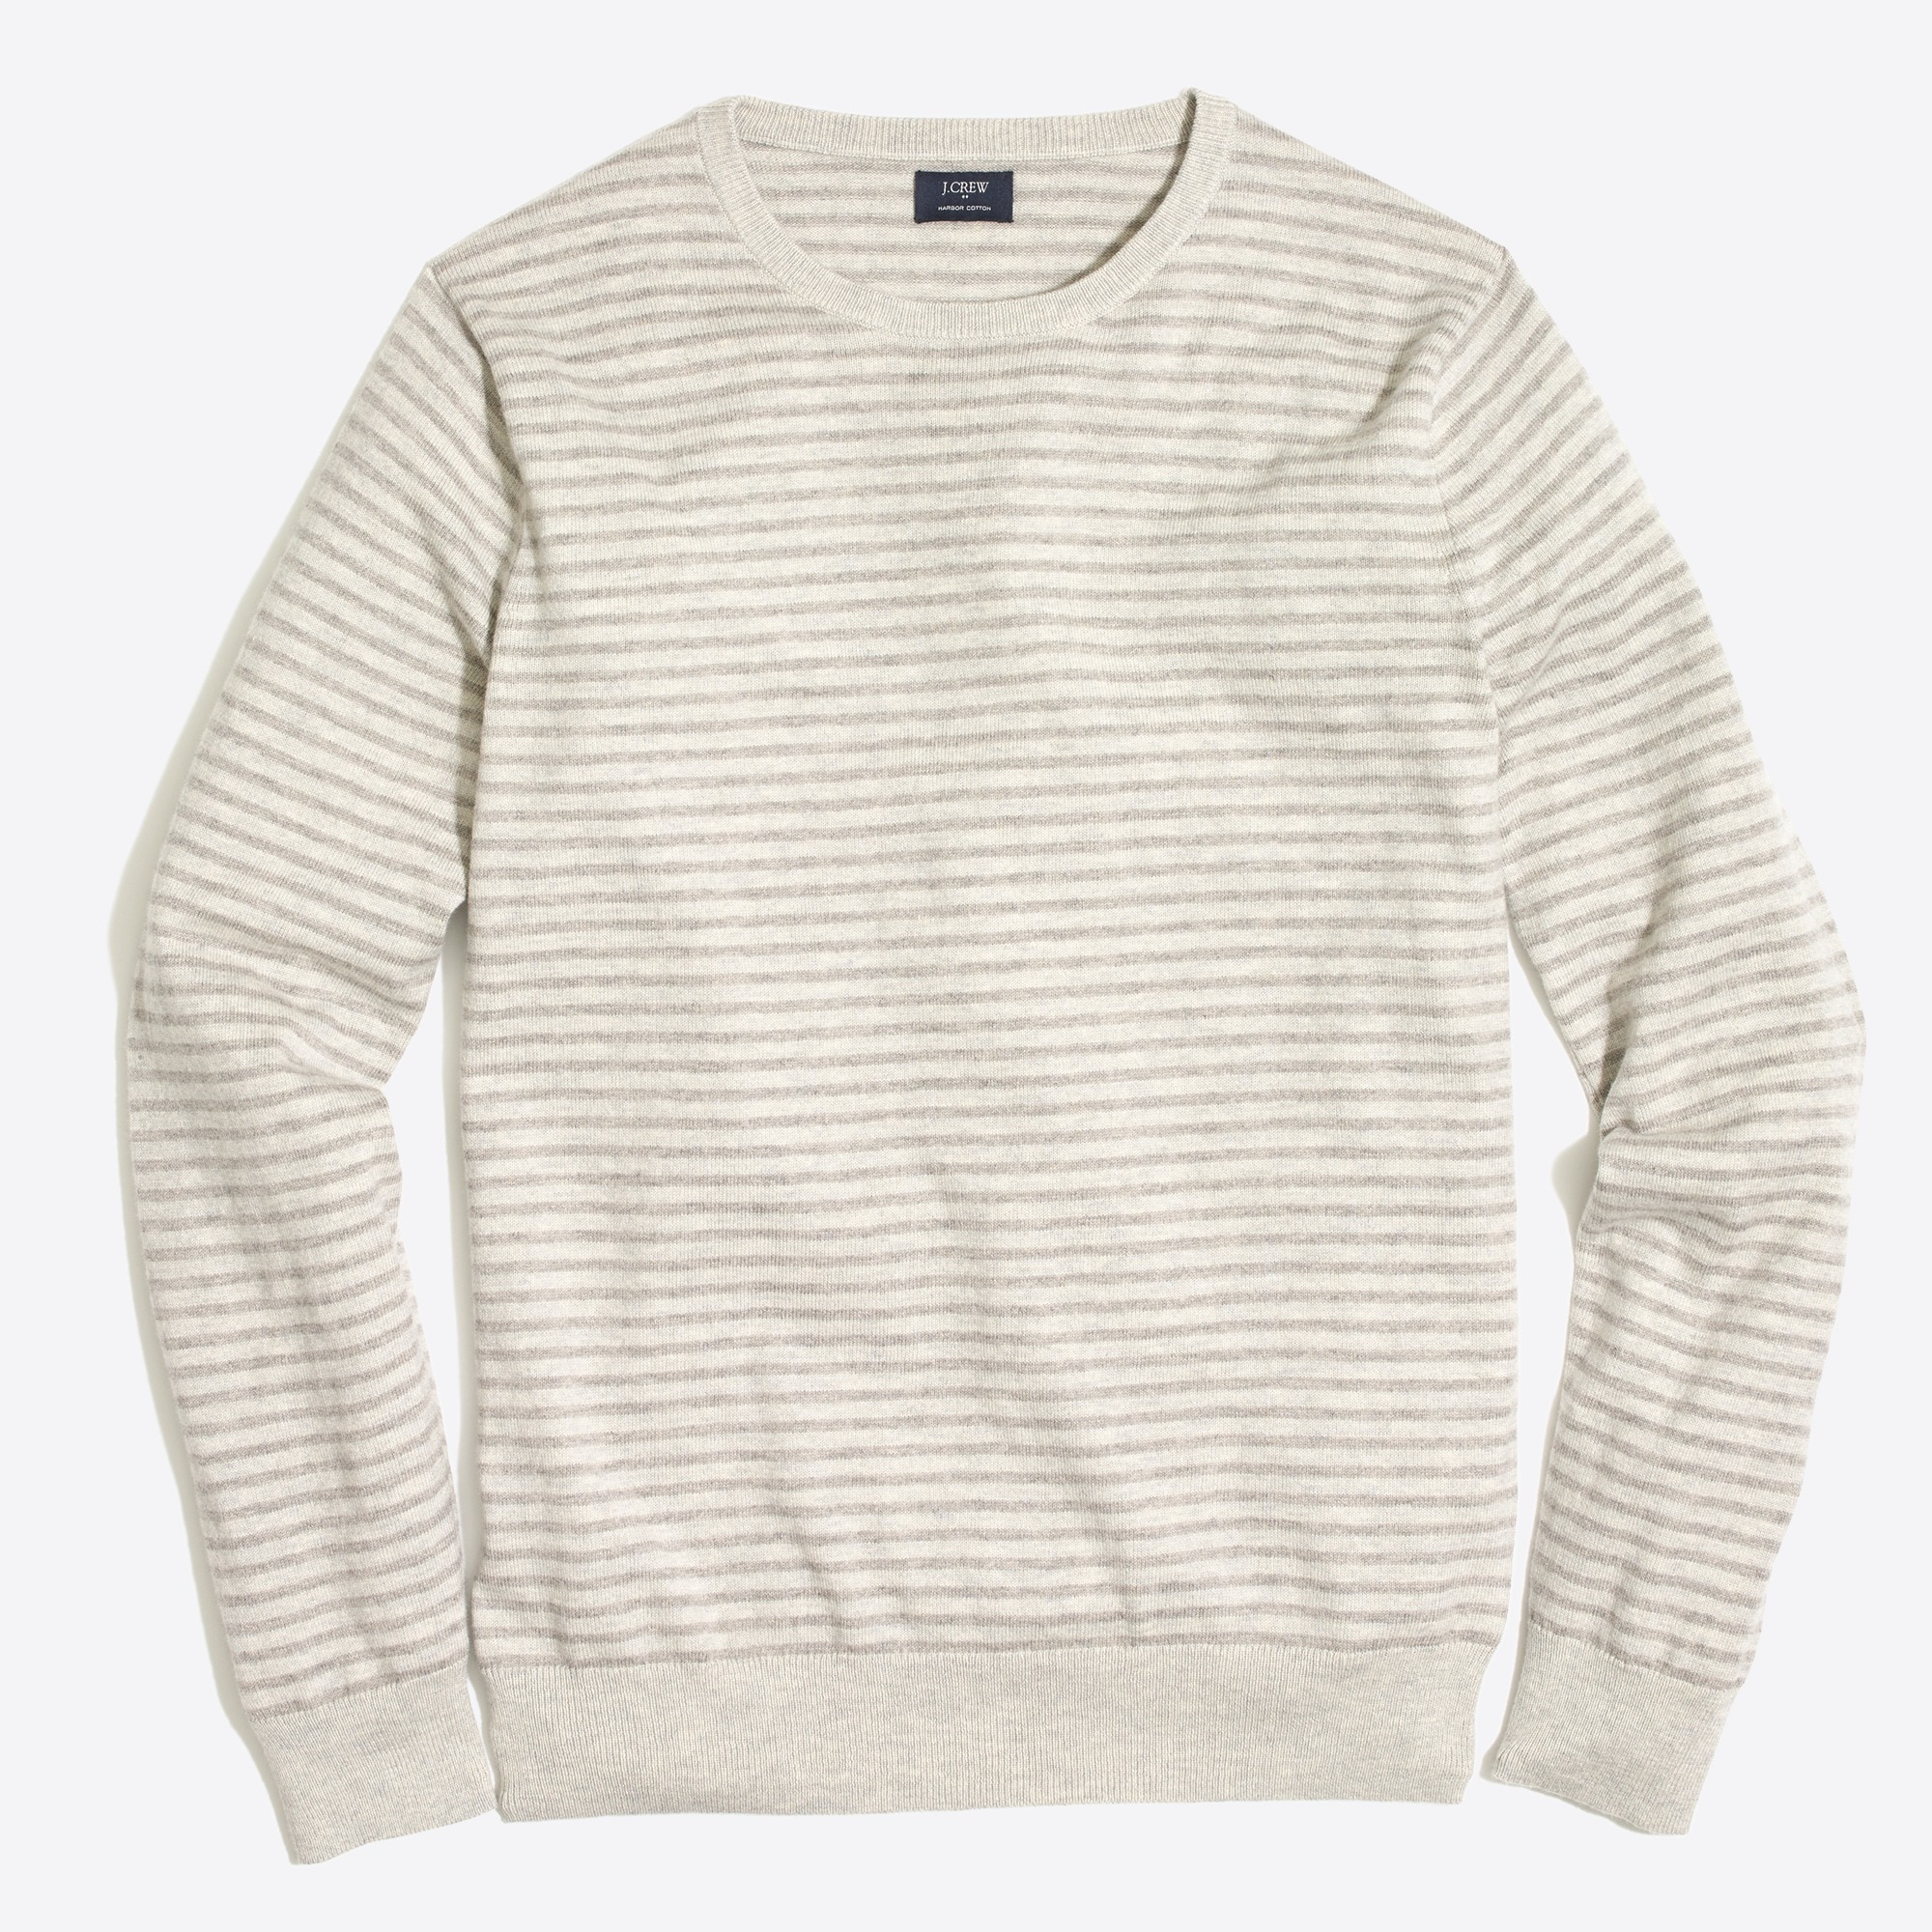 Image 1 for Harbor cotton striped crewneck sweater